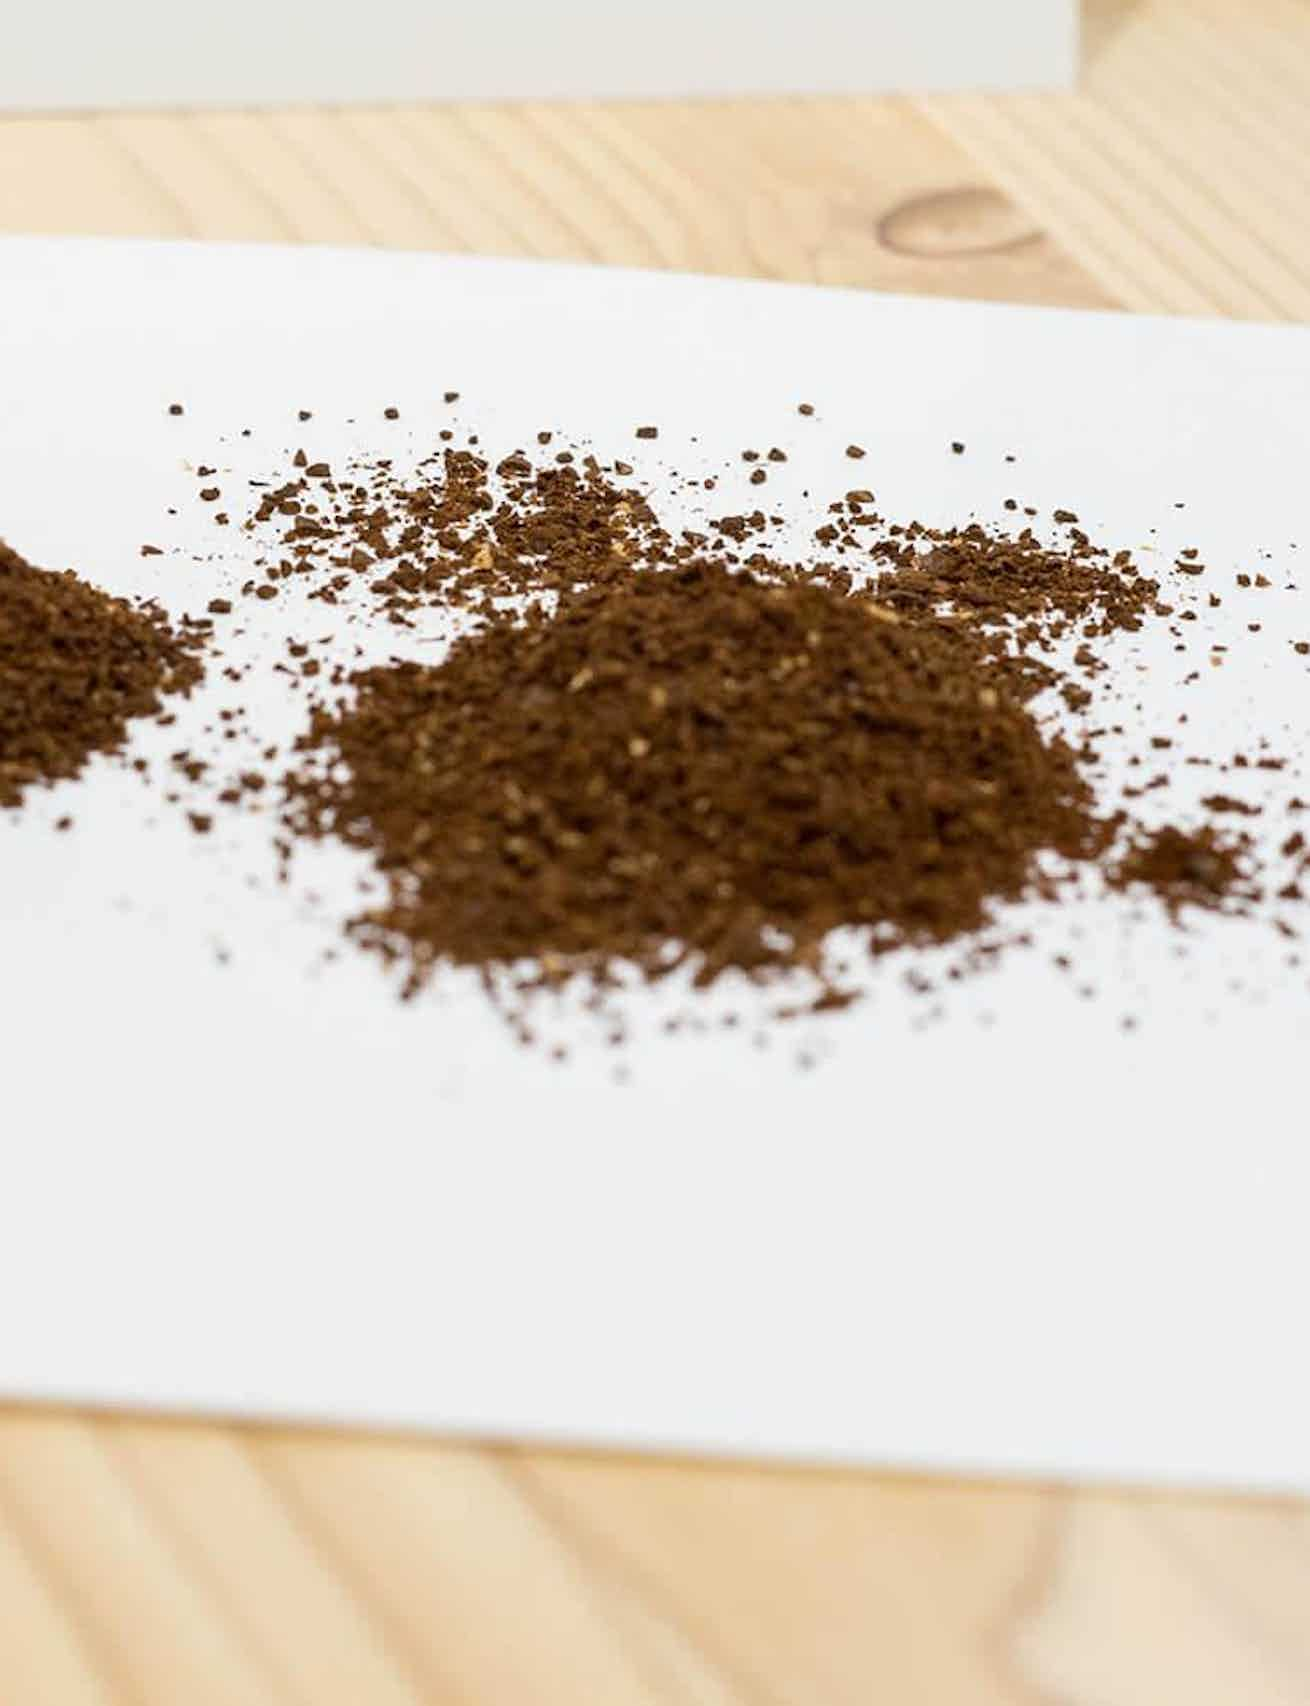 Grind types, Coava teaches how to make the best coffee